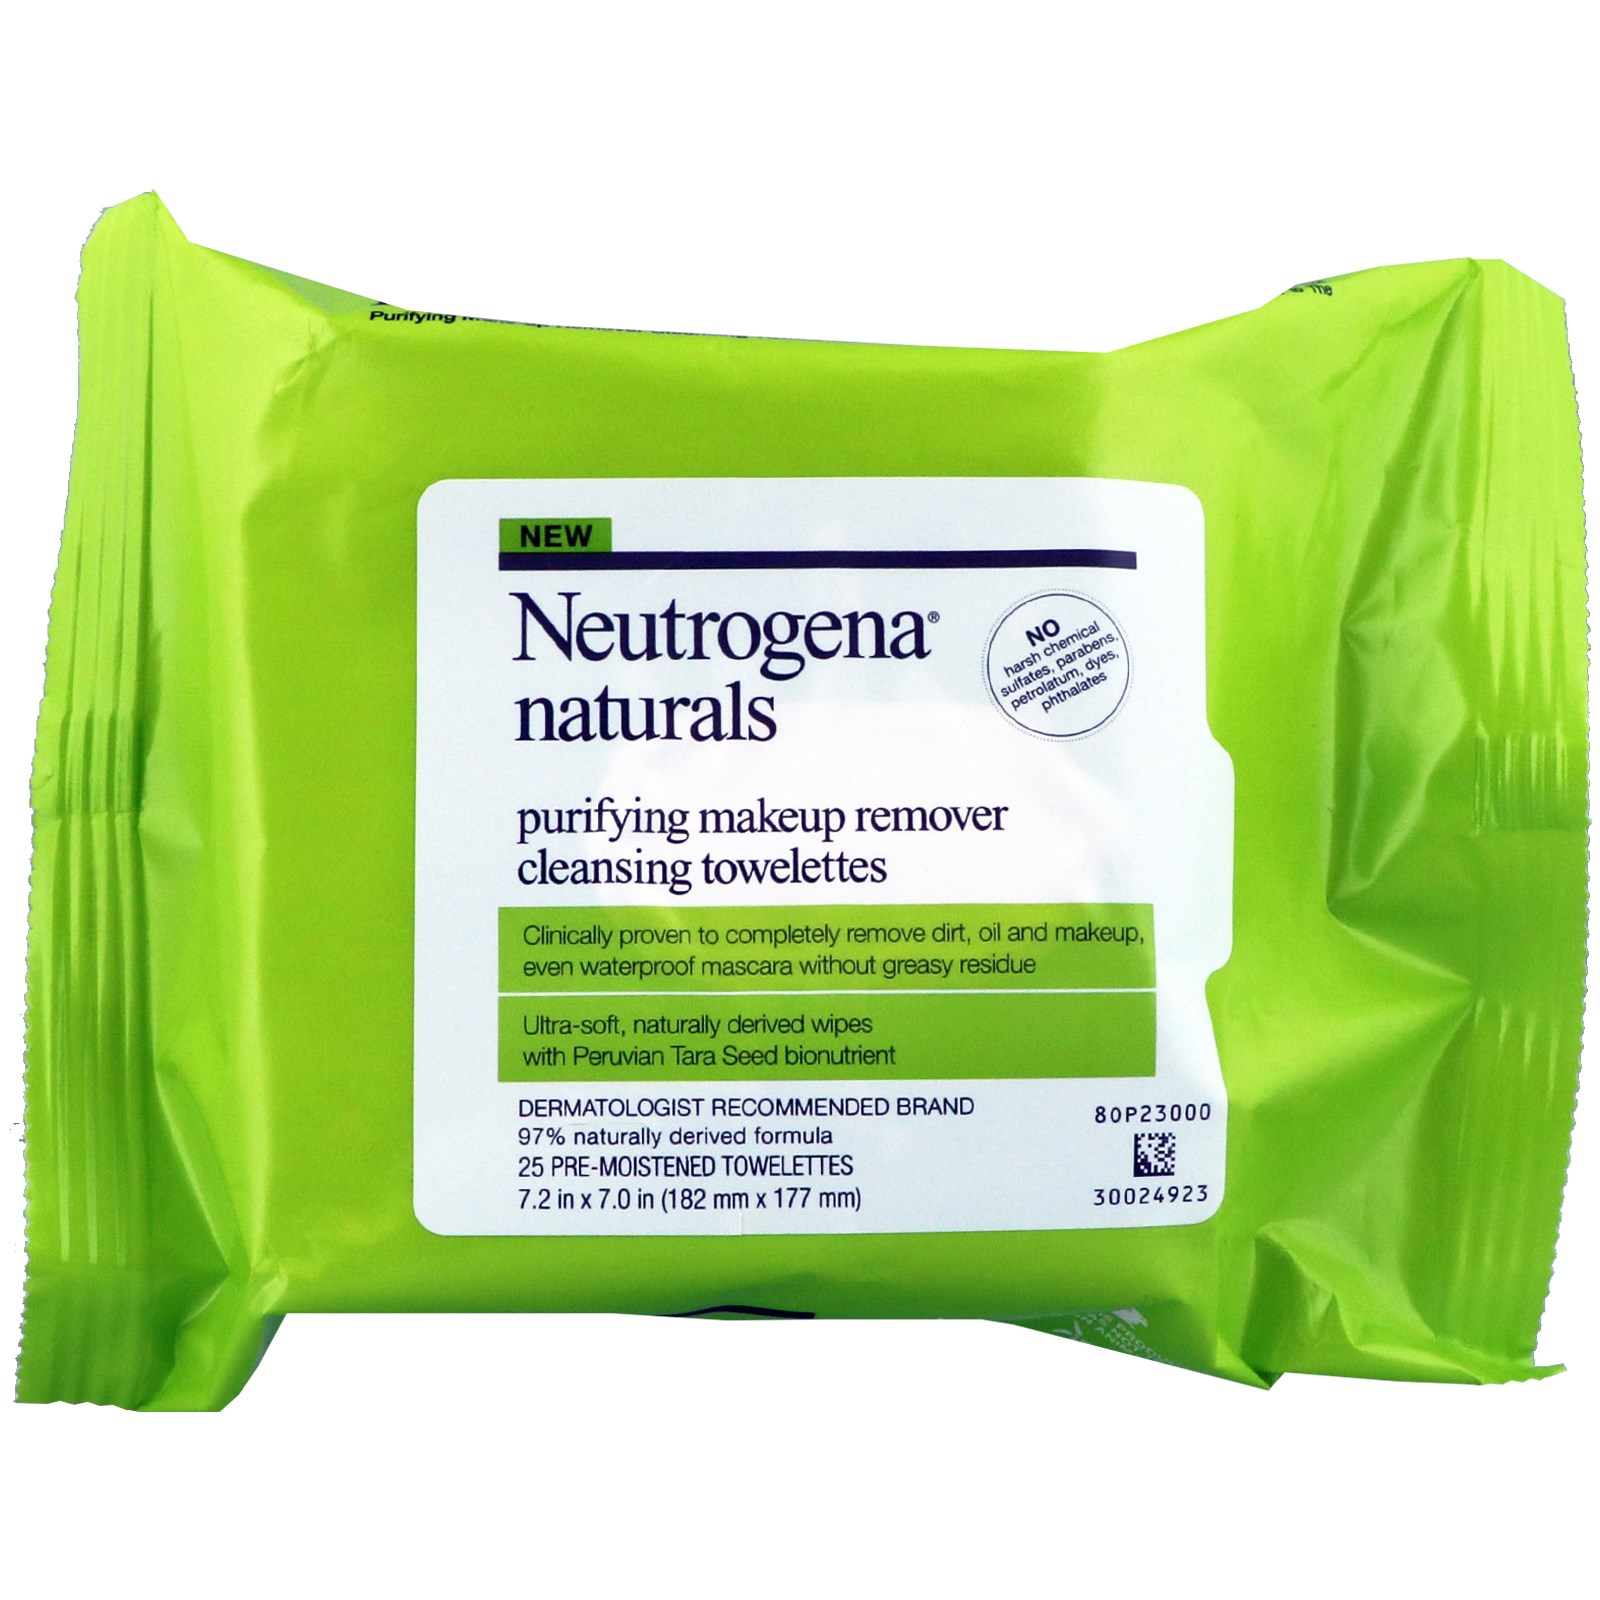 Neutrogena, Purifying Makeup Remover Cleansing Towelettes, 25 Towelettes